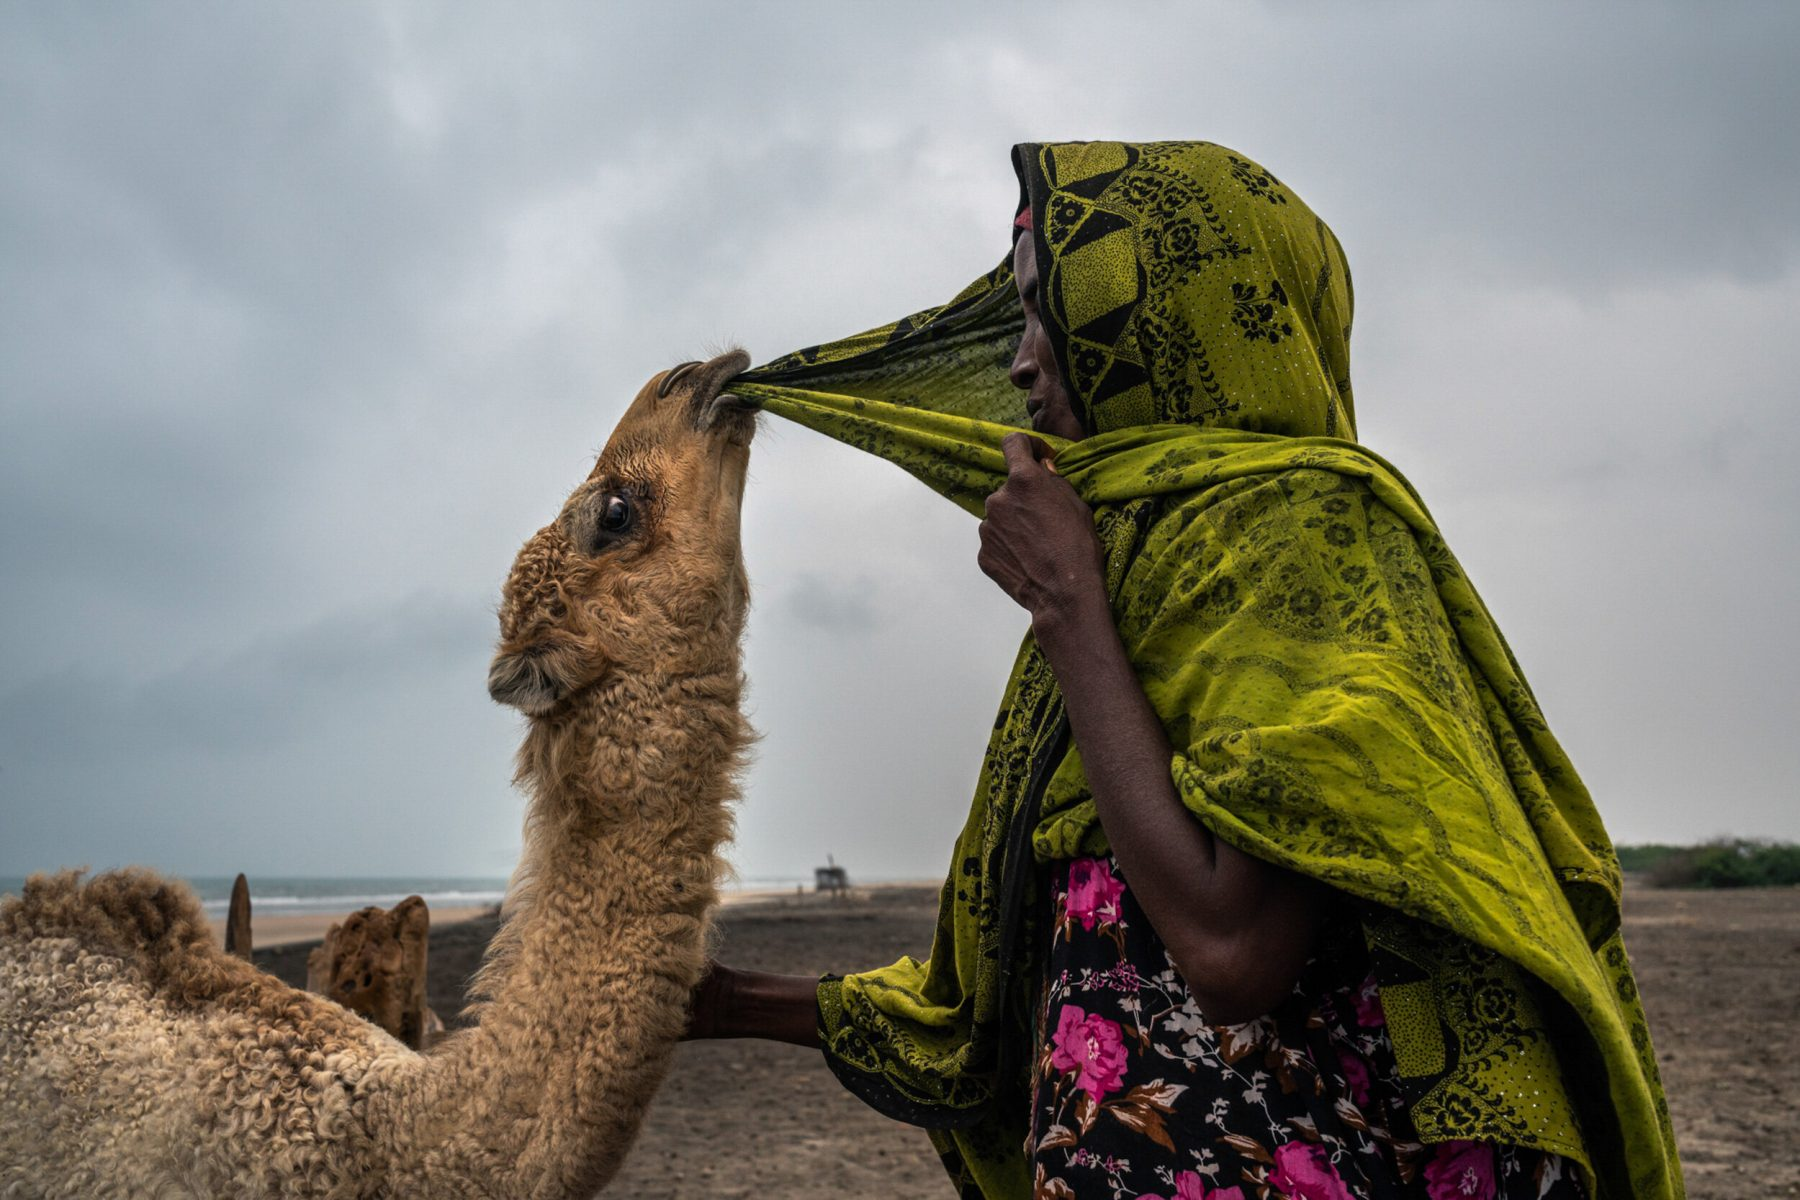 Color photo, woman and camel, Somalia by Nichole Sobecki